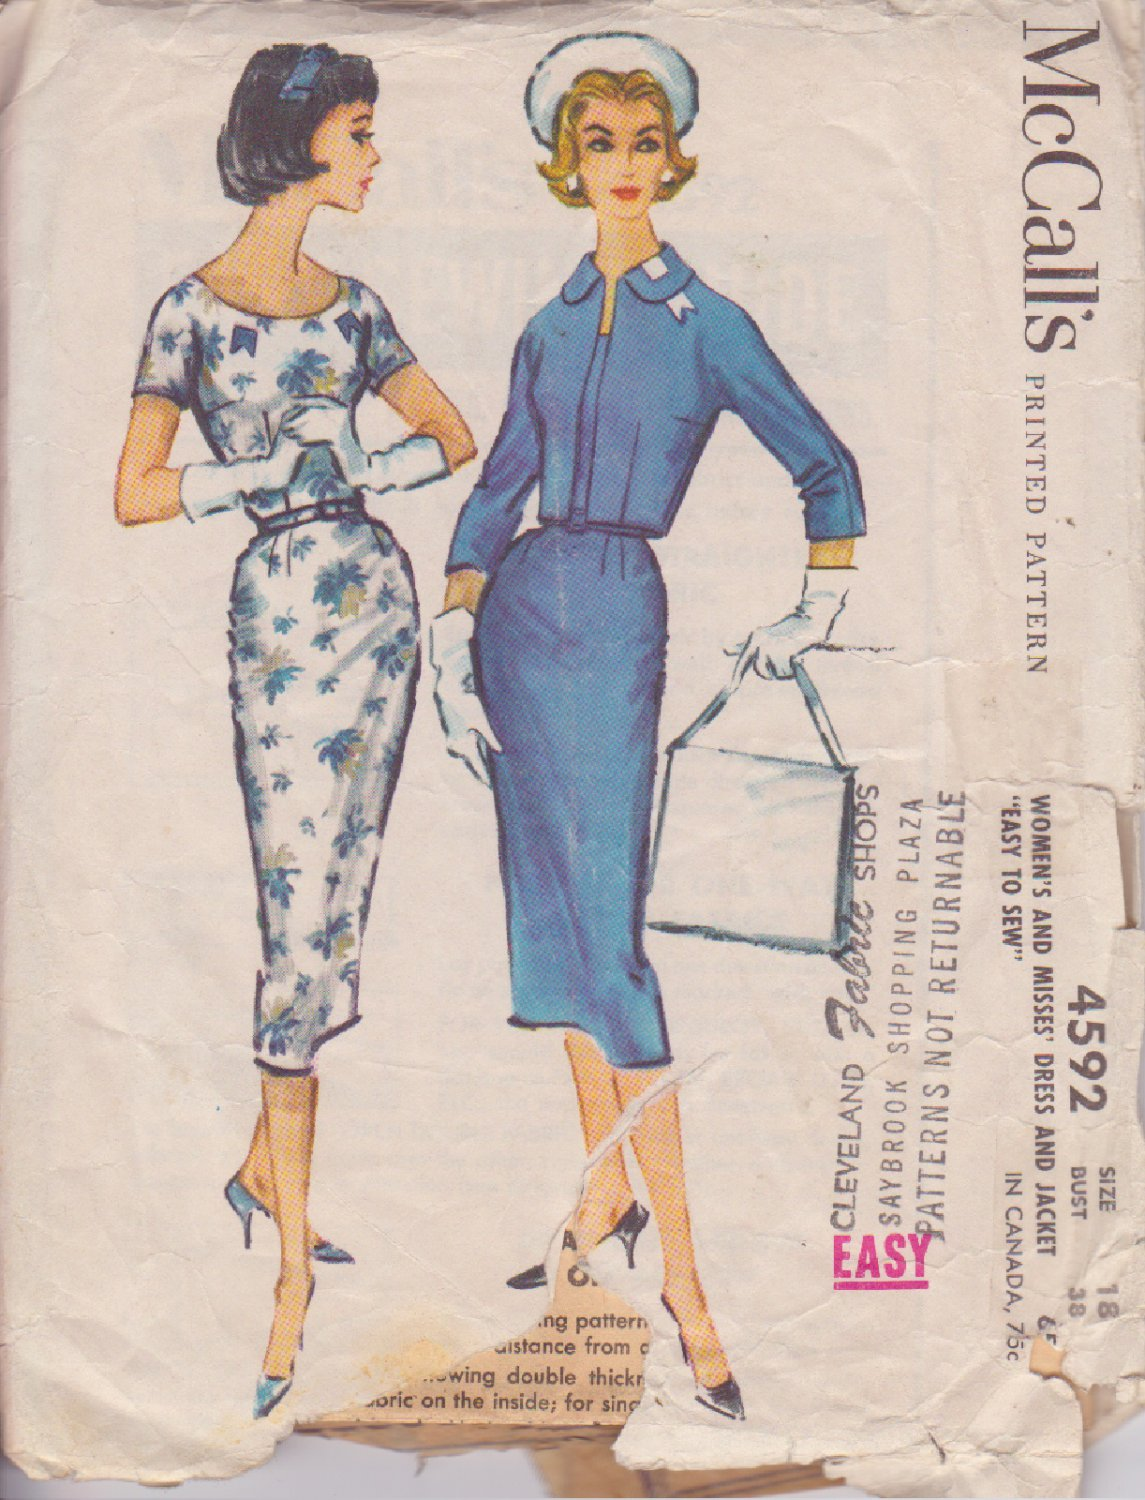 McCALL'S 1958 VINTAGE PATTERN 4592 SIZE 18 MISSES' DRESS AND JACKET